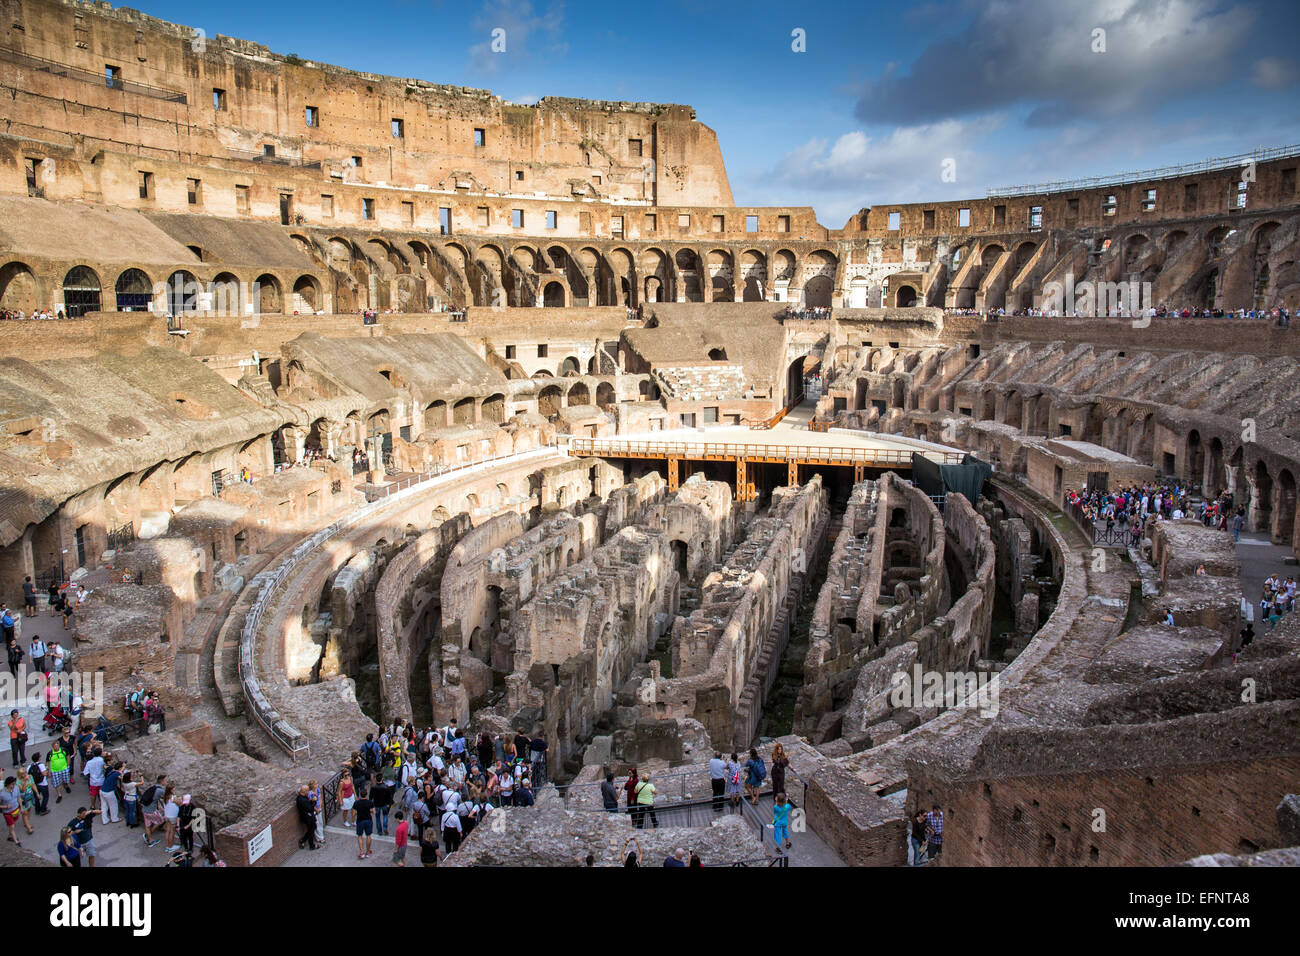 crowd of tourists colosseum coliseum rome italy europe